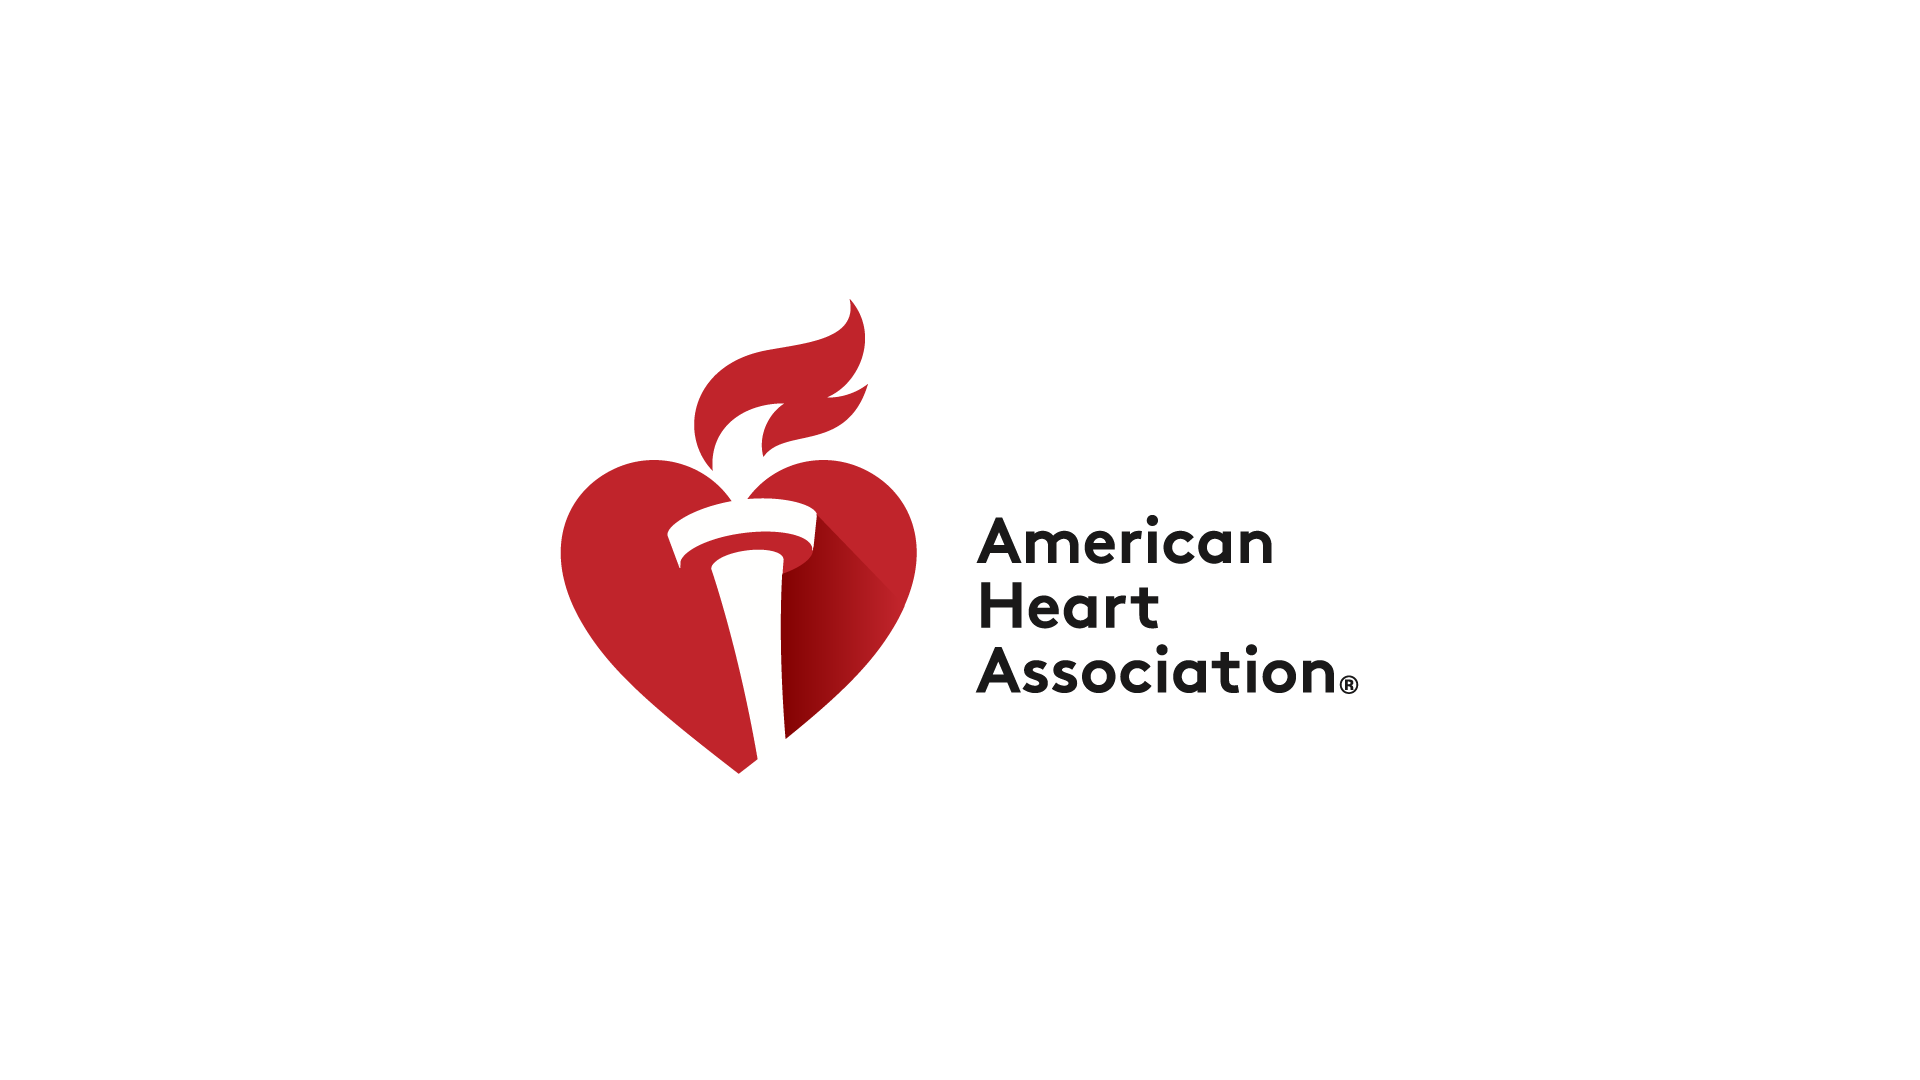 Logo of the American Heart Association